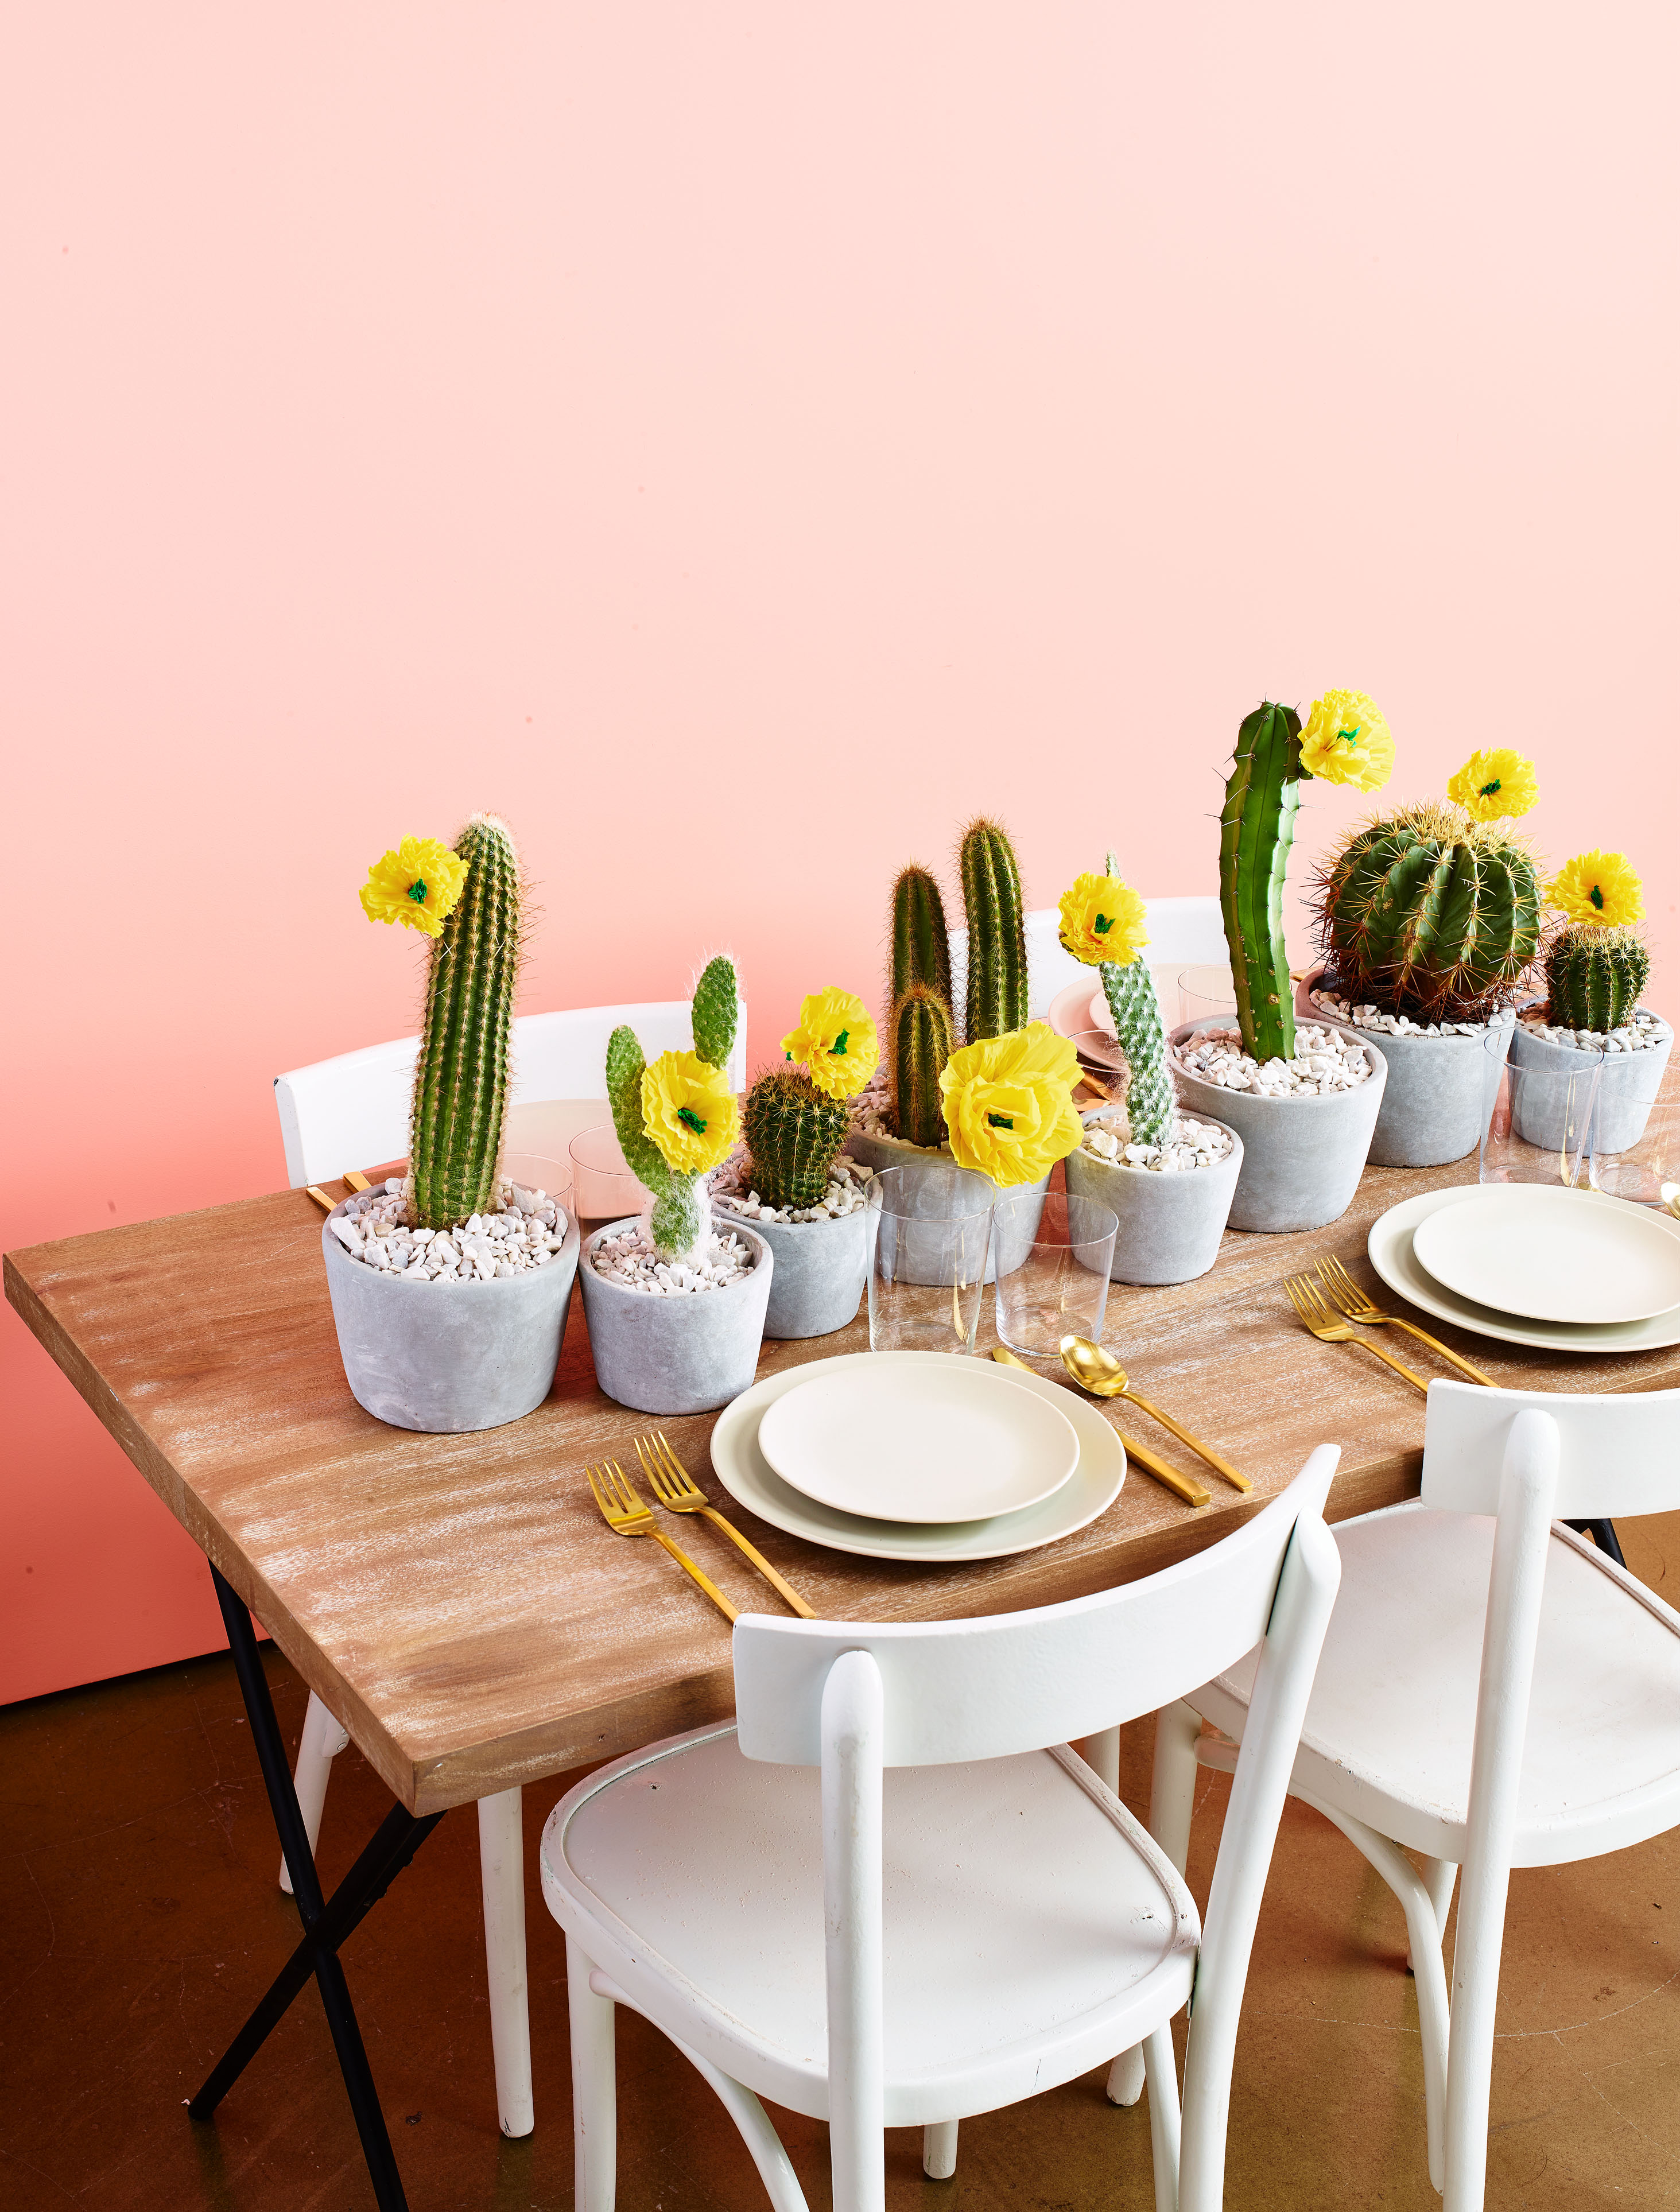 Colorful Cactus Table Runner